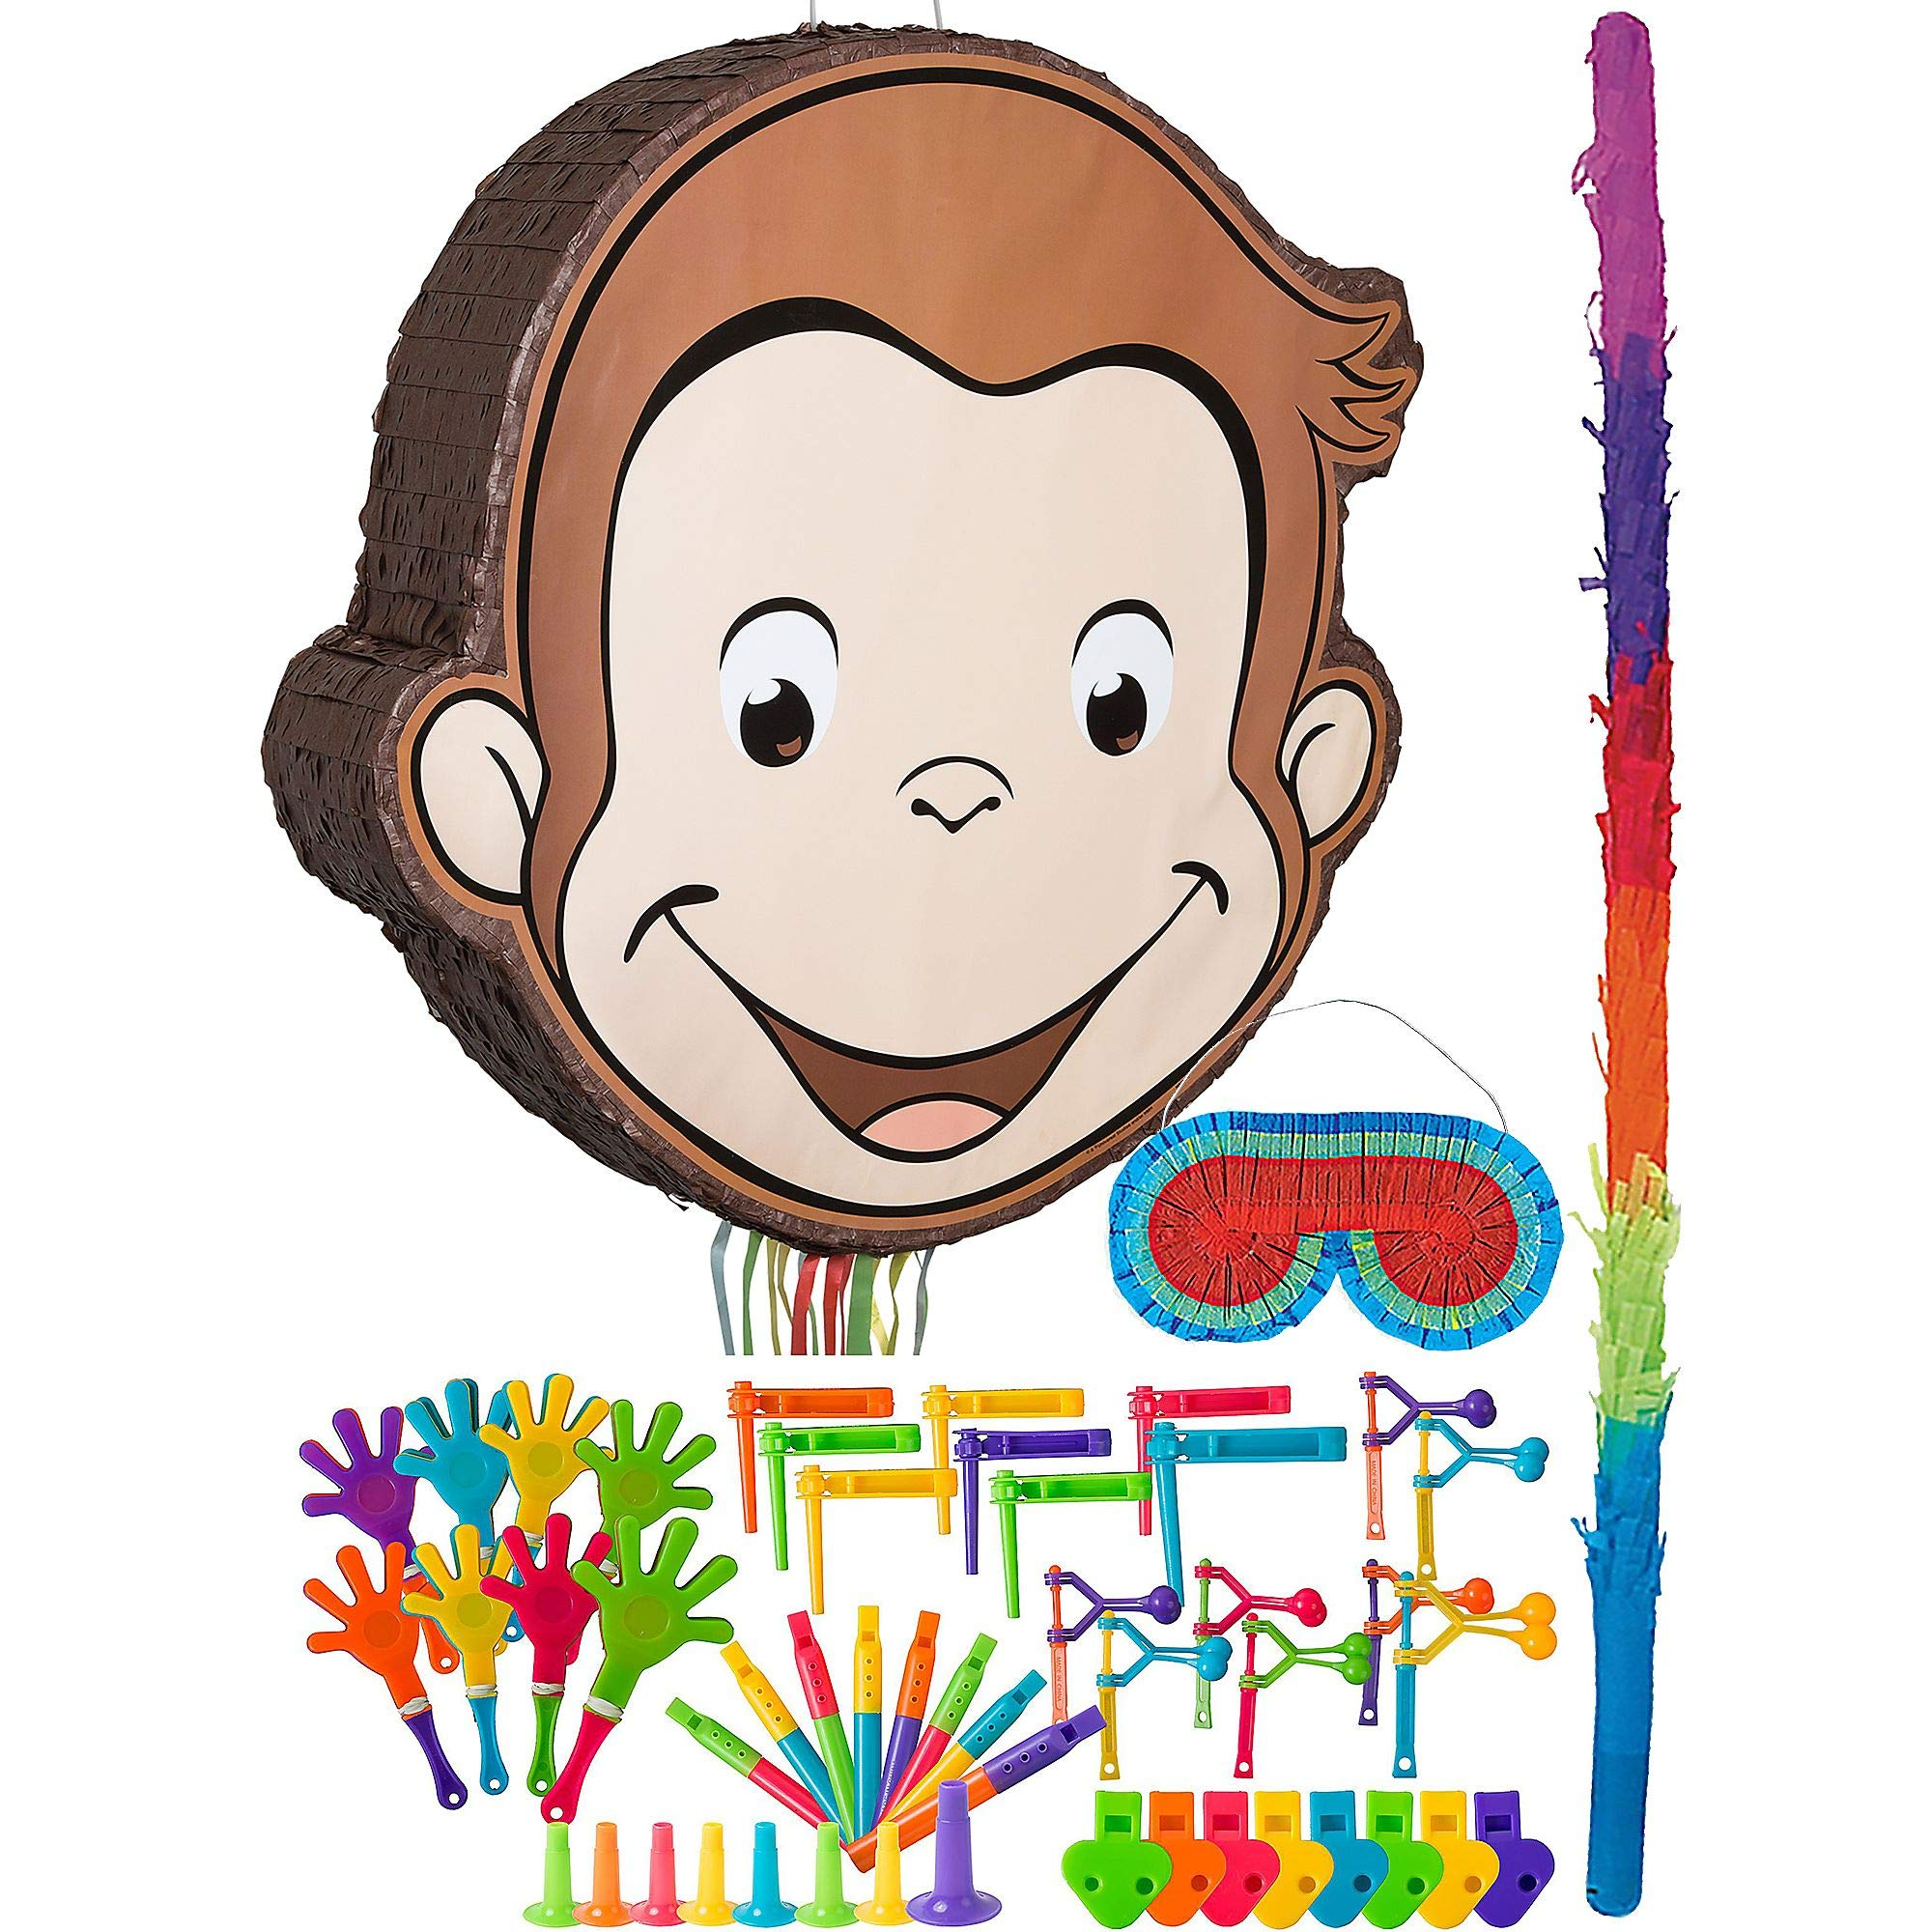 Party City Curious George Pinata Kit for Birthday Party, Includes Bat, Blindfold and 48pc Favor Pack